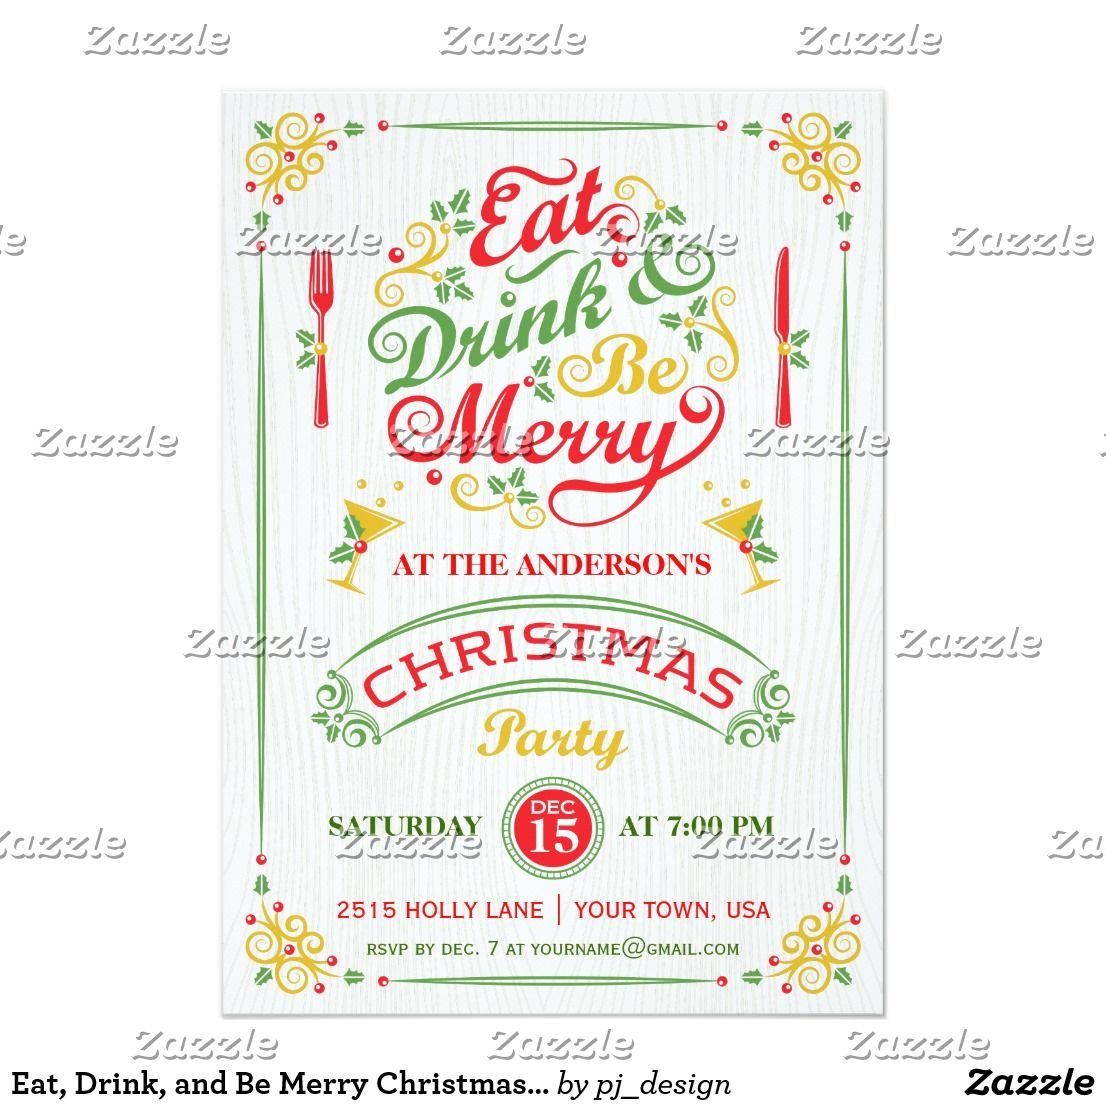 eat drink and be merry christmas party iii invitation pinterest